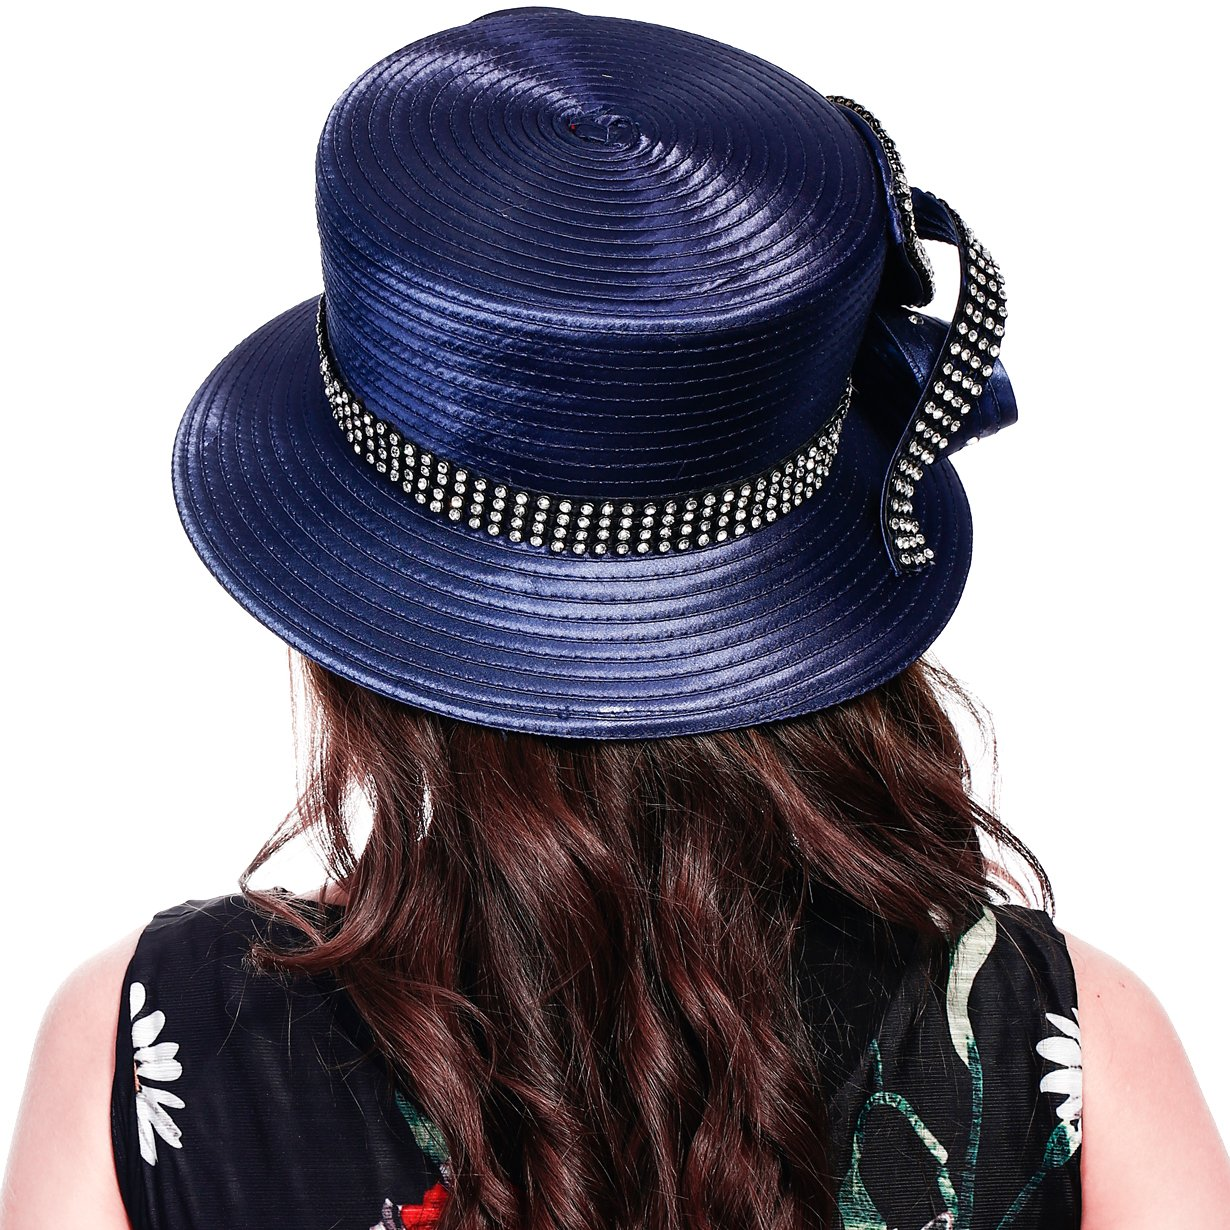 FORBUSITE Stripe Ribbon Asymmetry Church Derby Dress Hat SD707 (Navy) by FORBUSITE (Image #4)